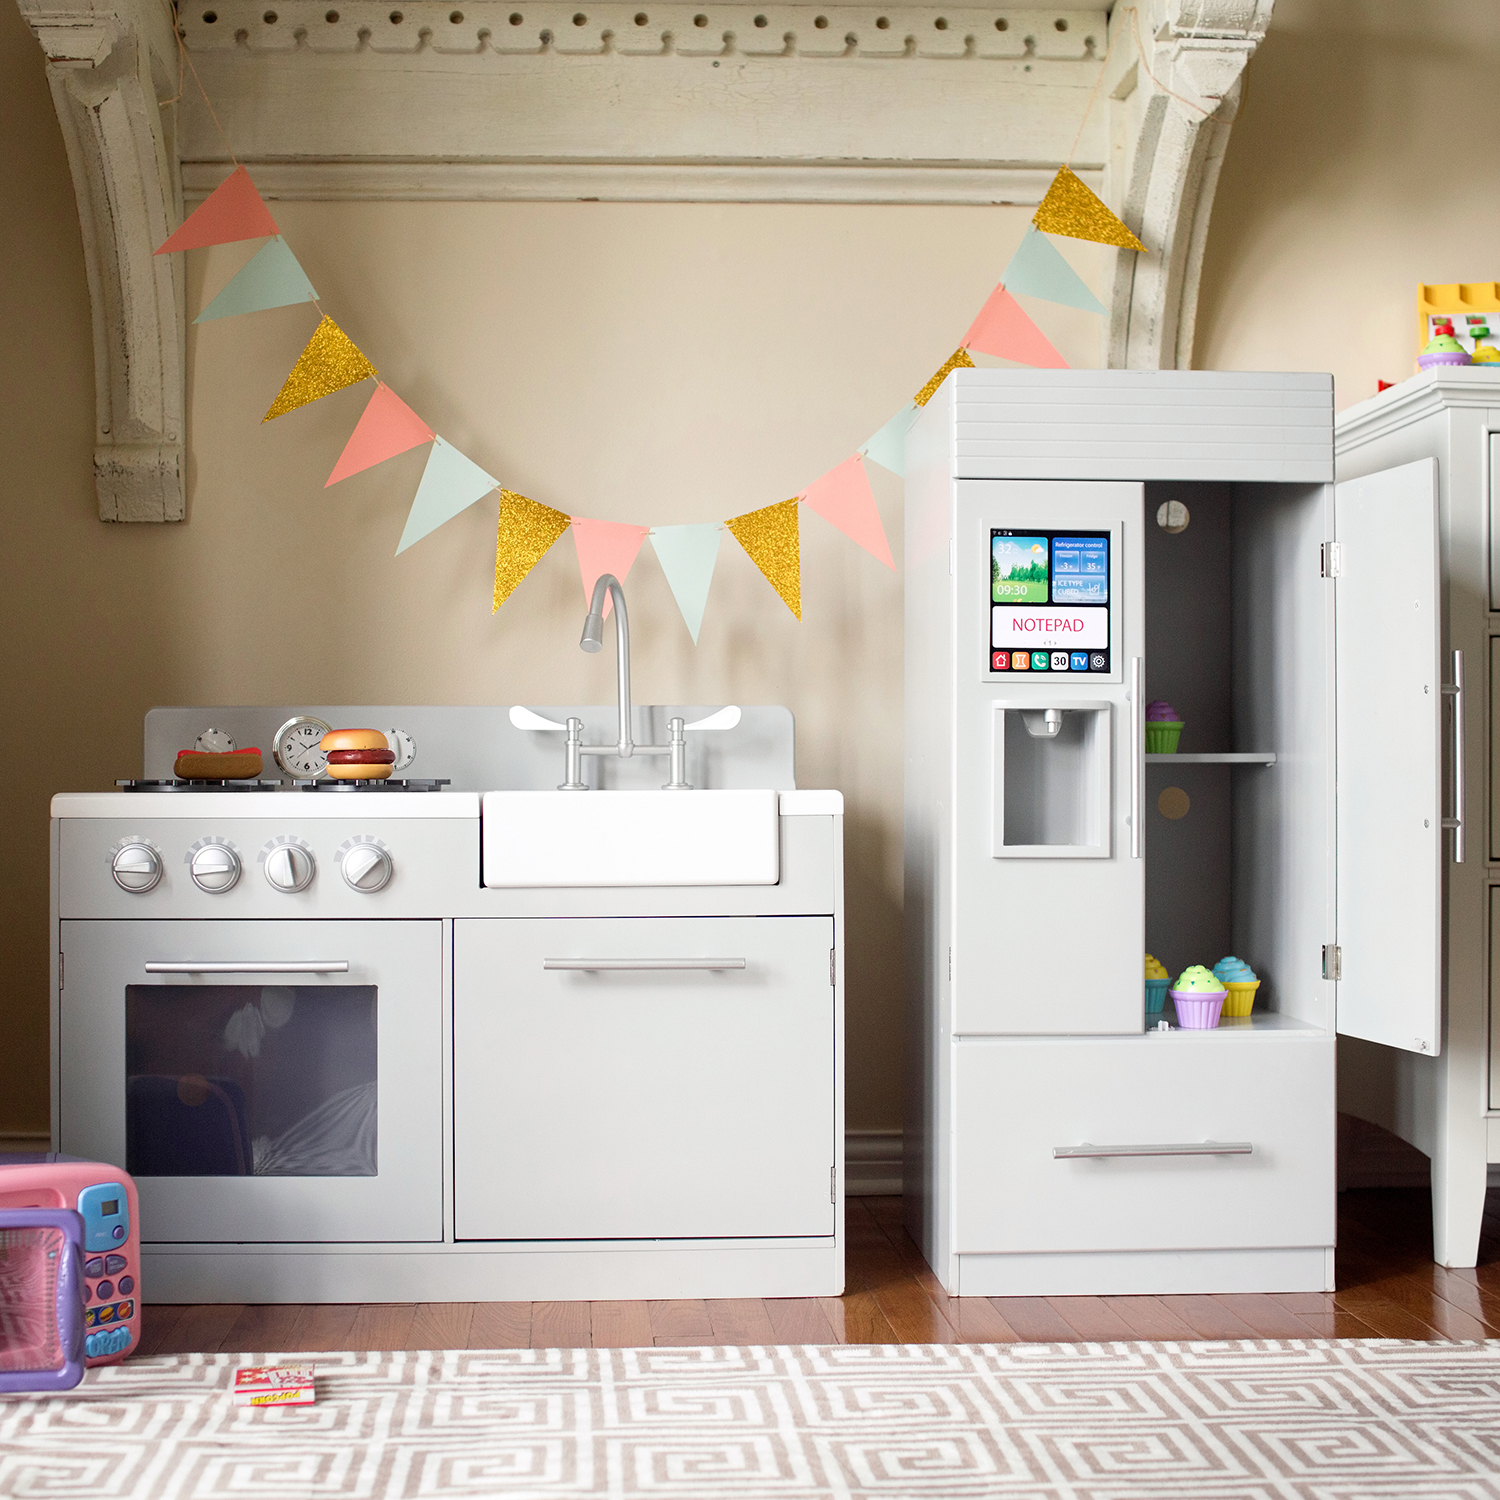 Kitchen with Refrigerator Play Set